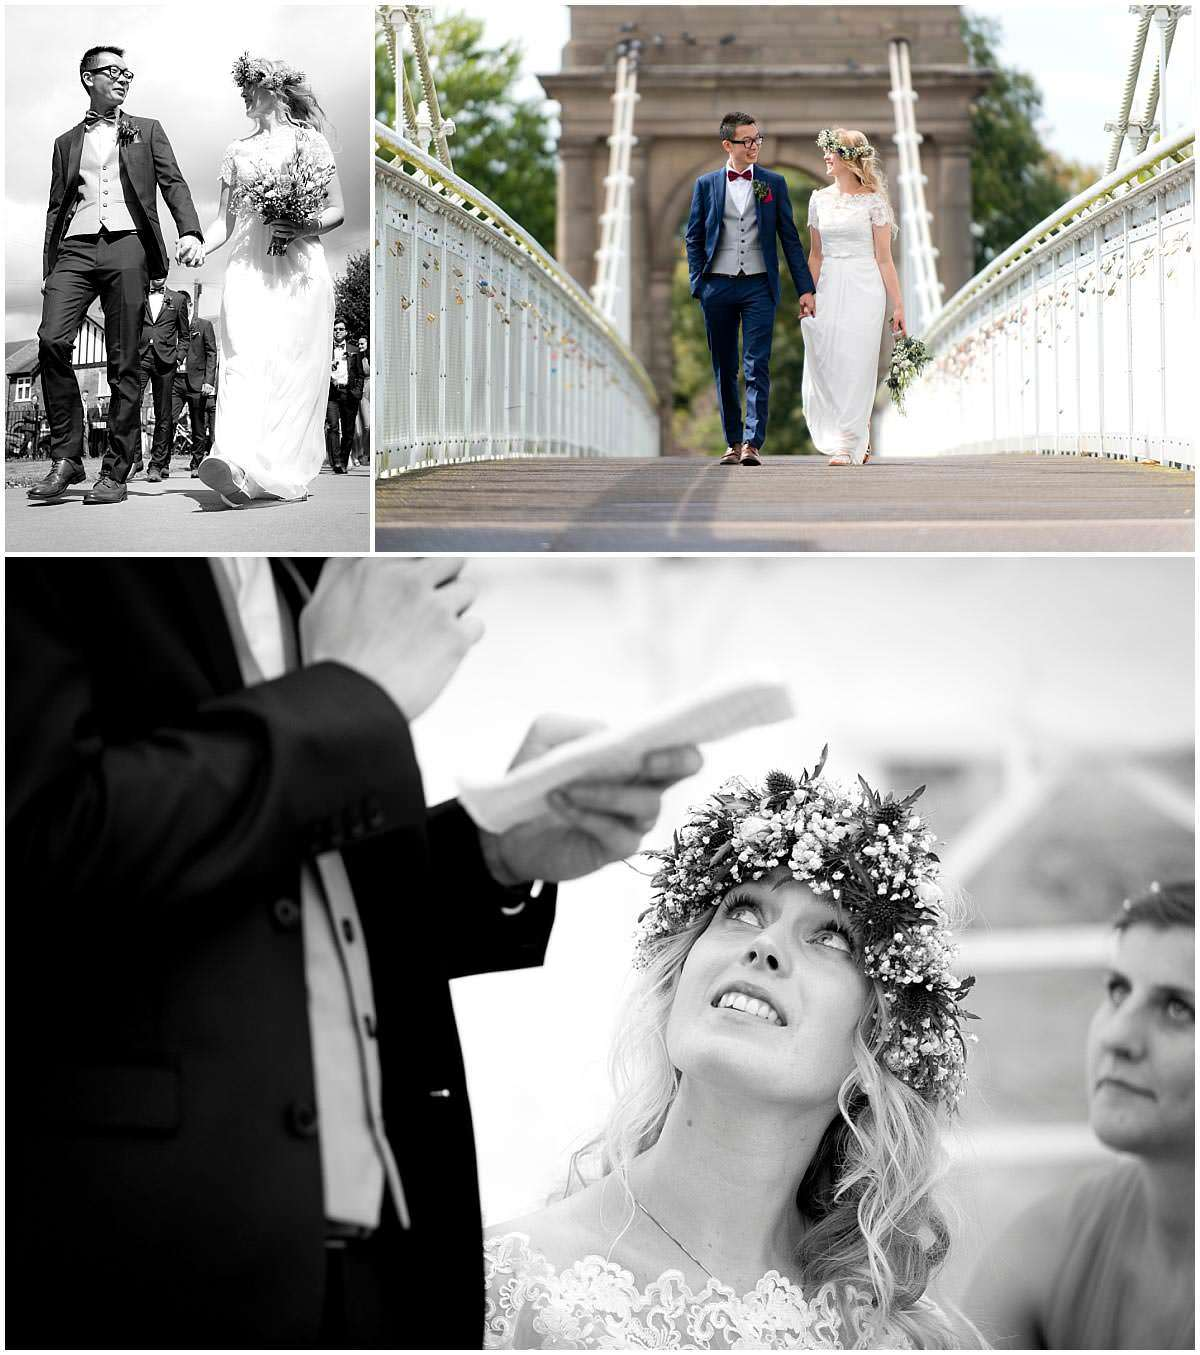 Nottingham Wedding Photographer Matt Selby 39